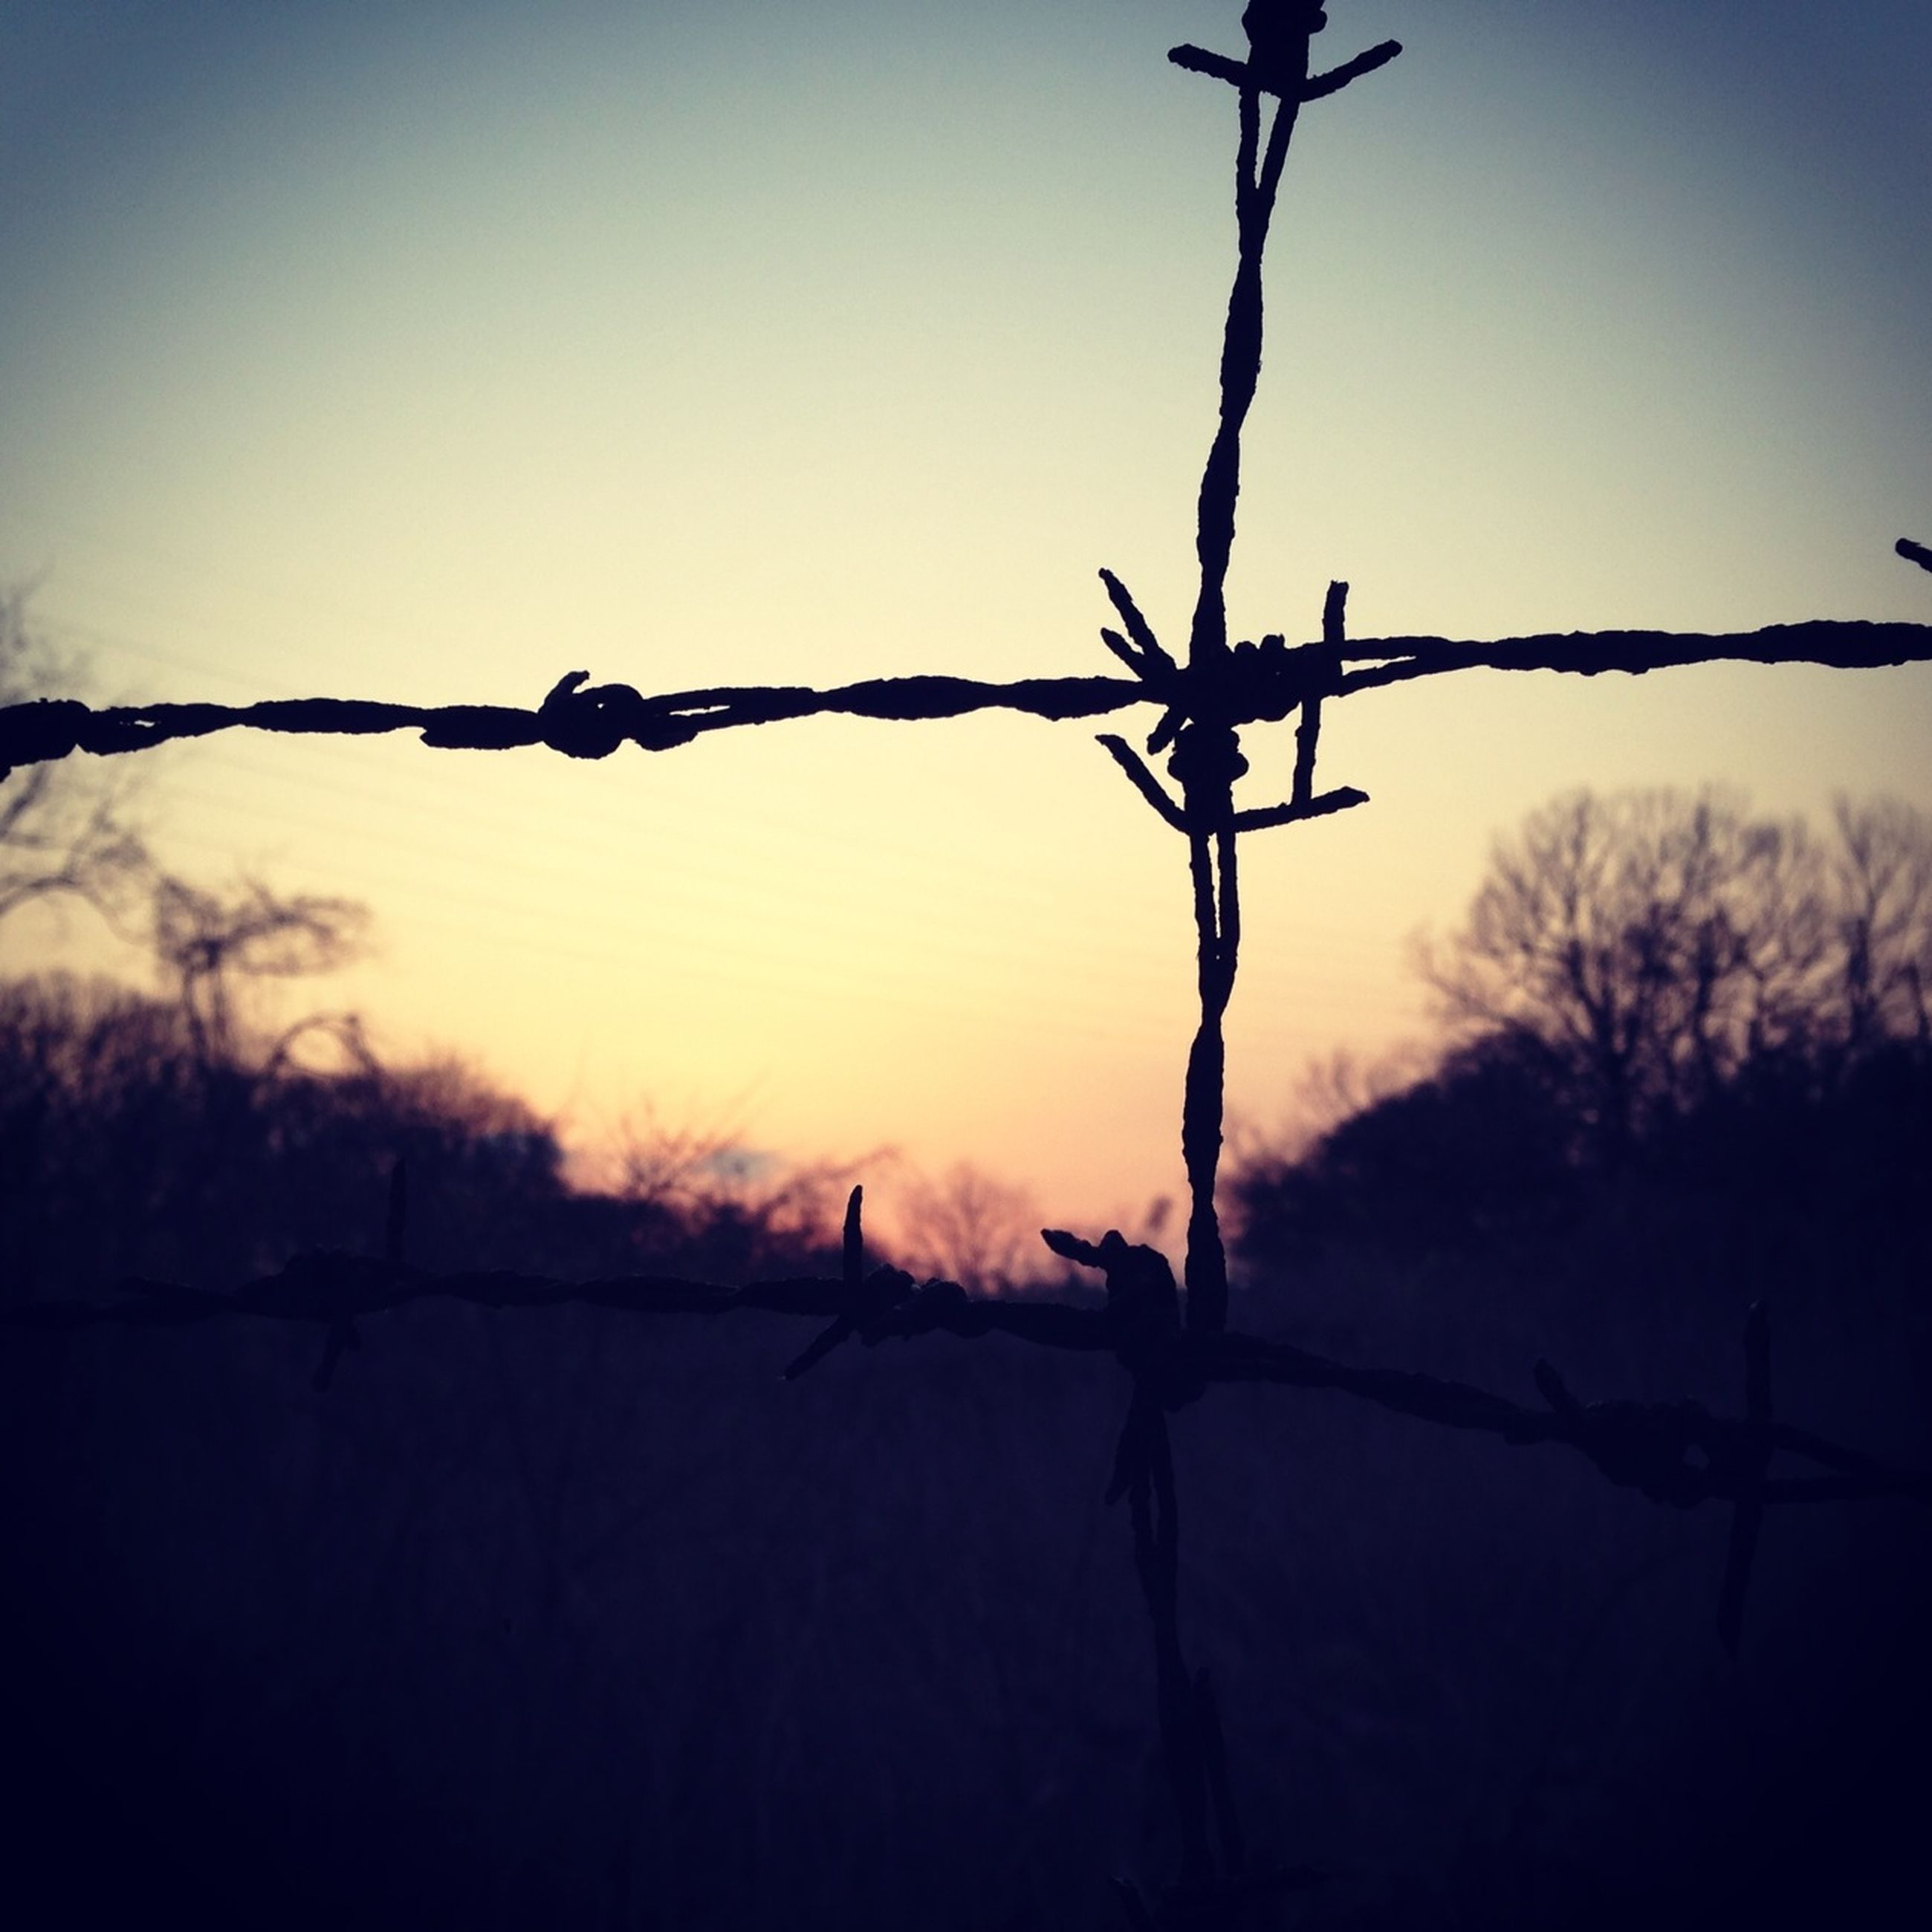 barbed wire, silhouette, sunset, fence, safety, branch, protection, security, bare tree, clear sky, focus on foreground, nature, sky, tranquility, metal, outdoors, wire, dusk, tree, chainlink fence